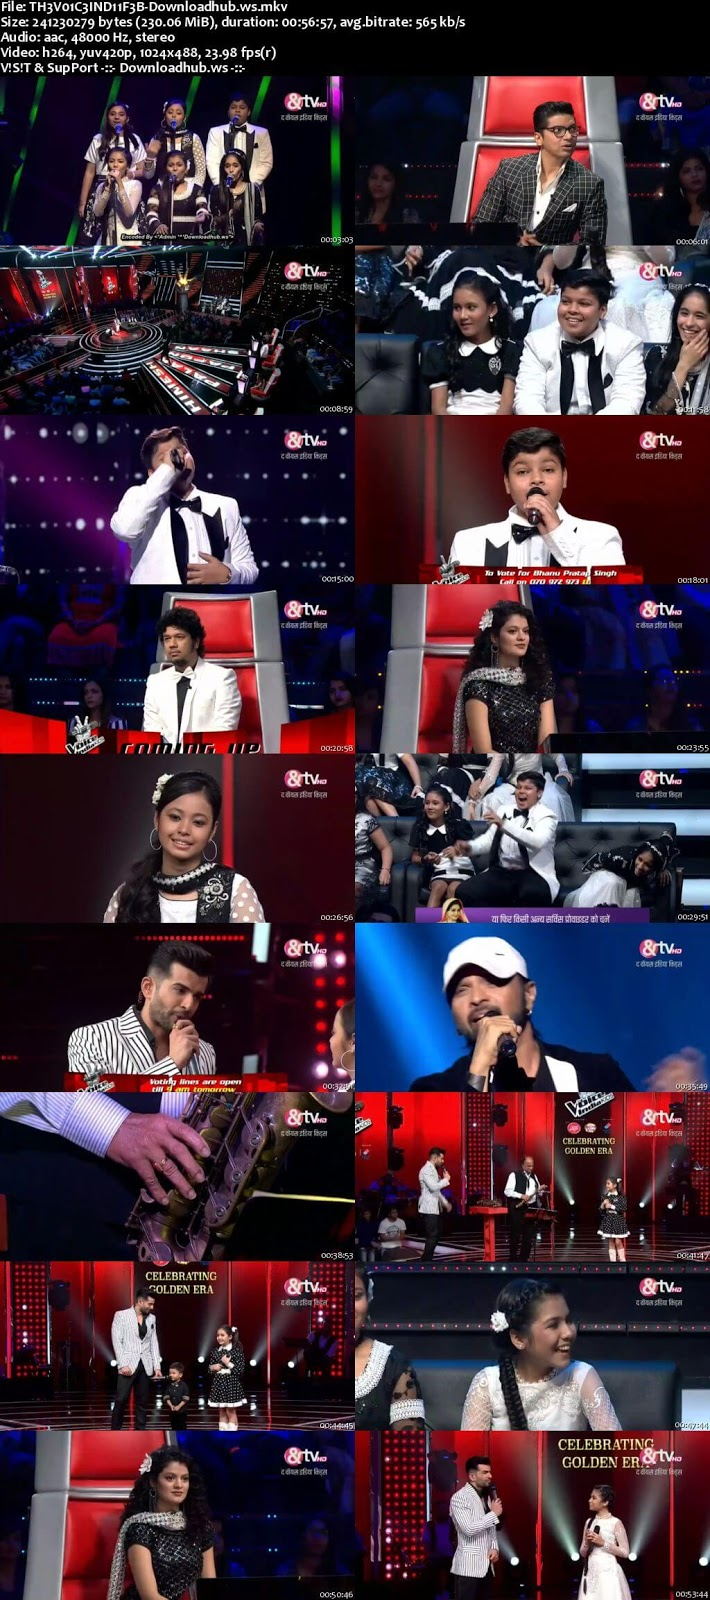 The Voice India Kids 2 11 February 2018 Episode 28 HDTV 480p